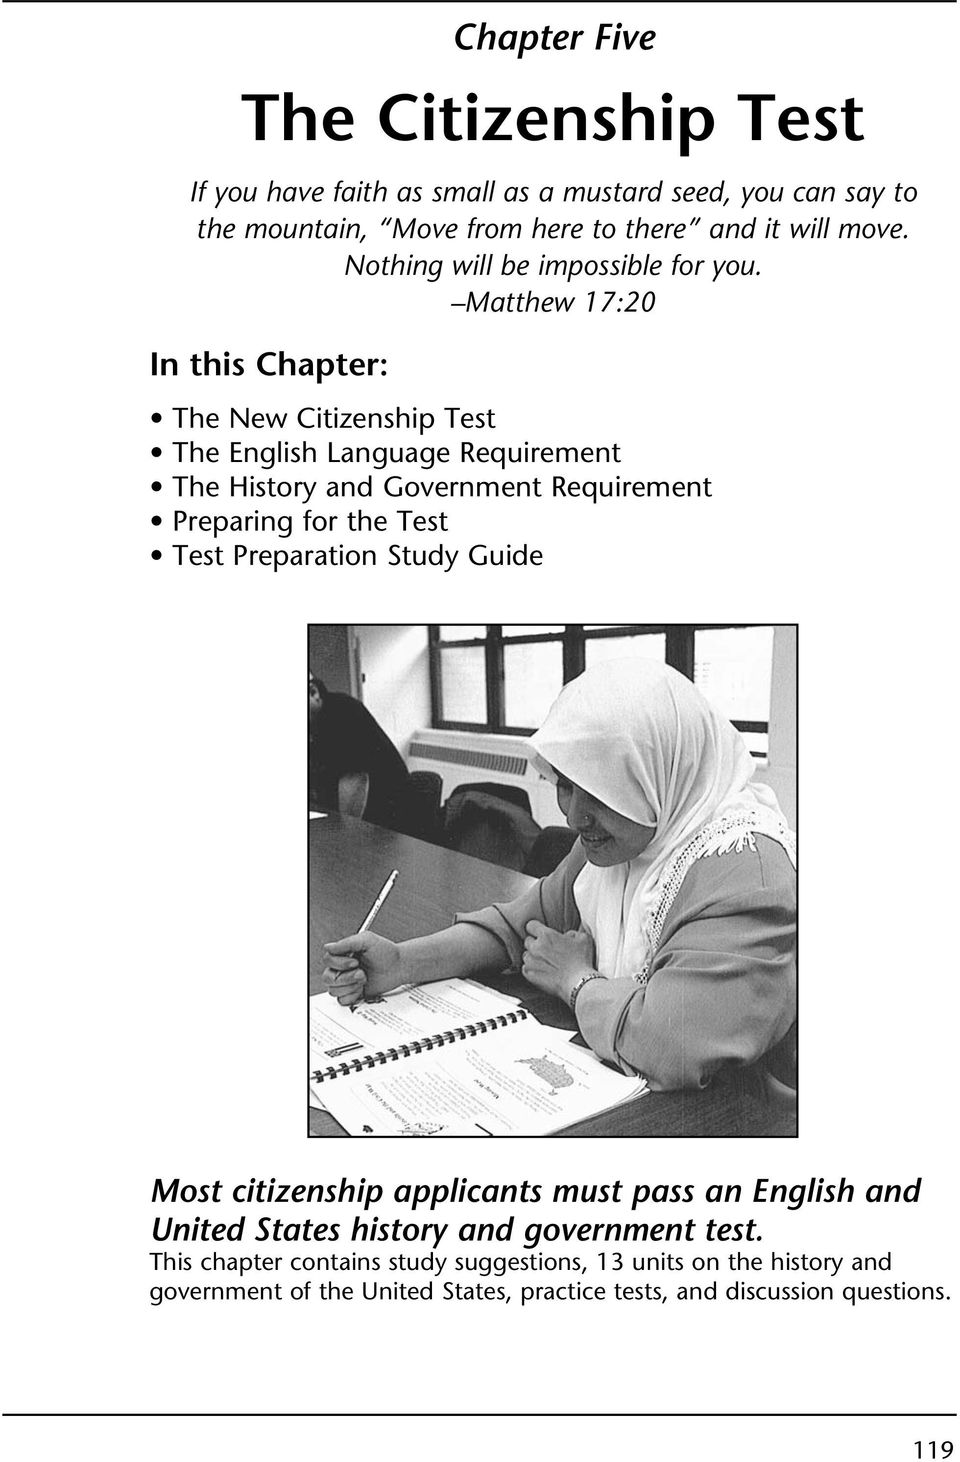 Matthew 17:20 In this Chapter: The New Citizenship Test The English Language Requirement The History and Government Requirement Preparing for the Test